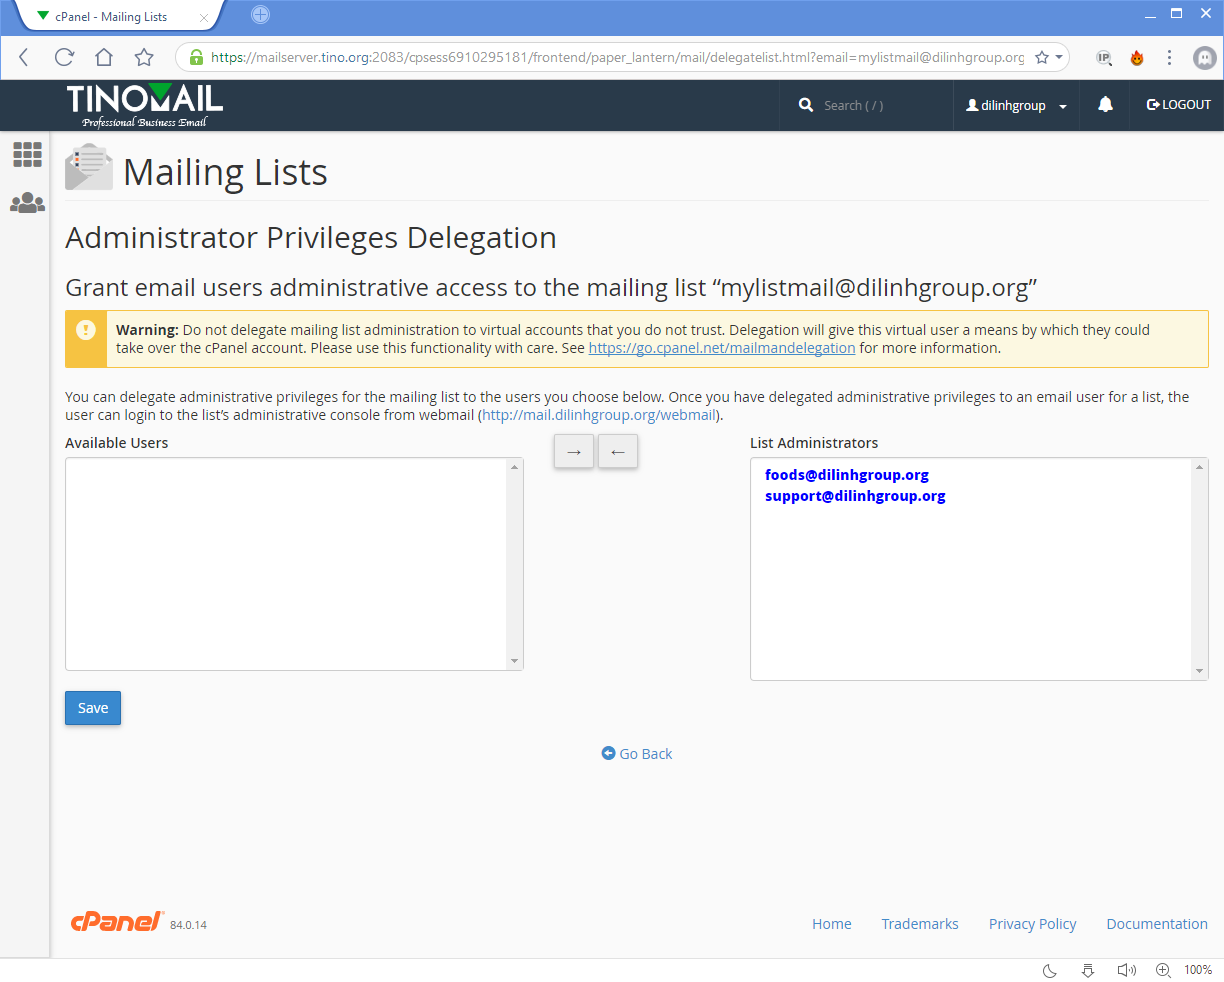 [cPanel] - Mailing Lists 22